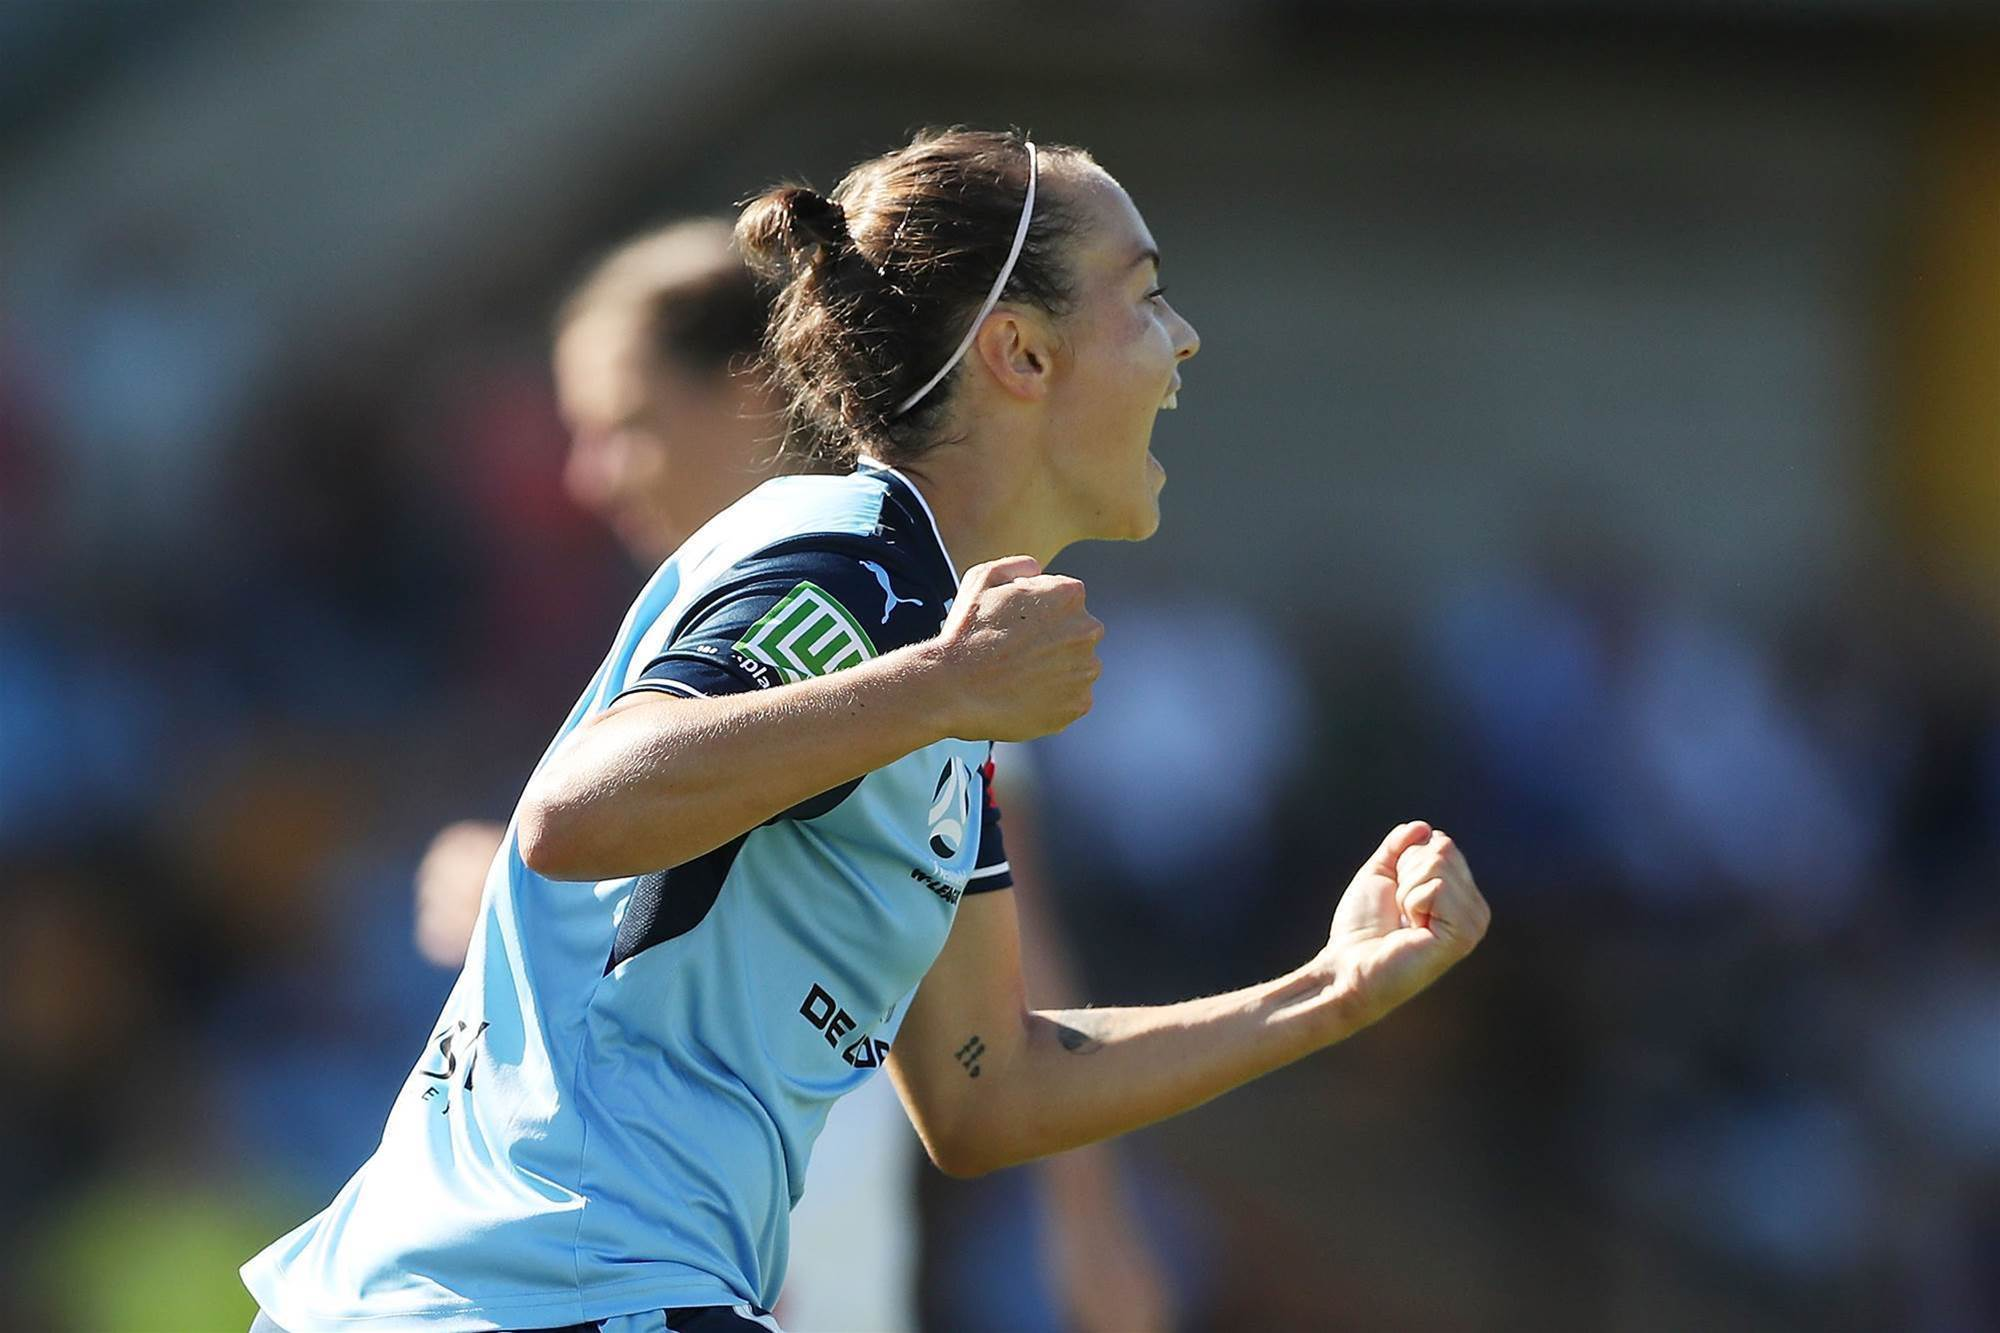 W-League Grand Final: We're playing for Caitlin says Sydney